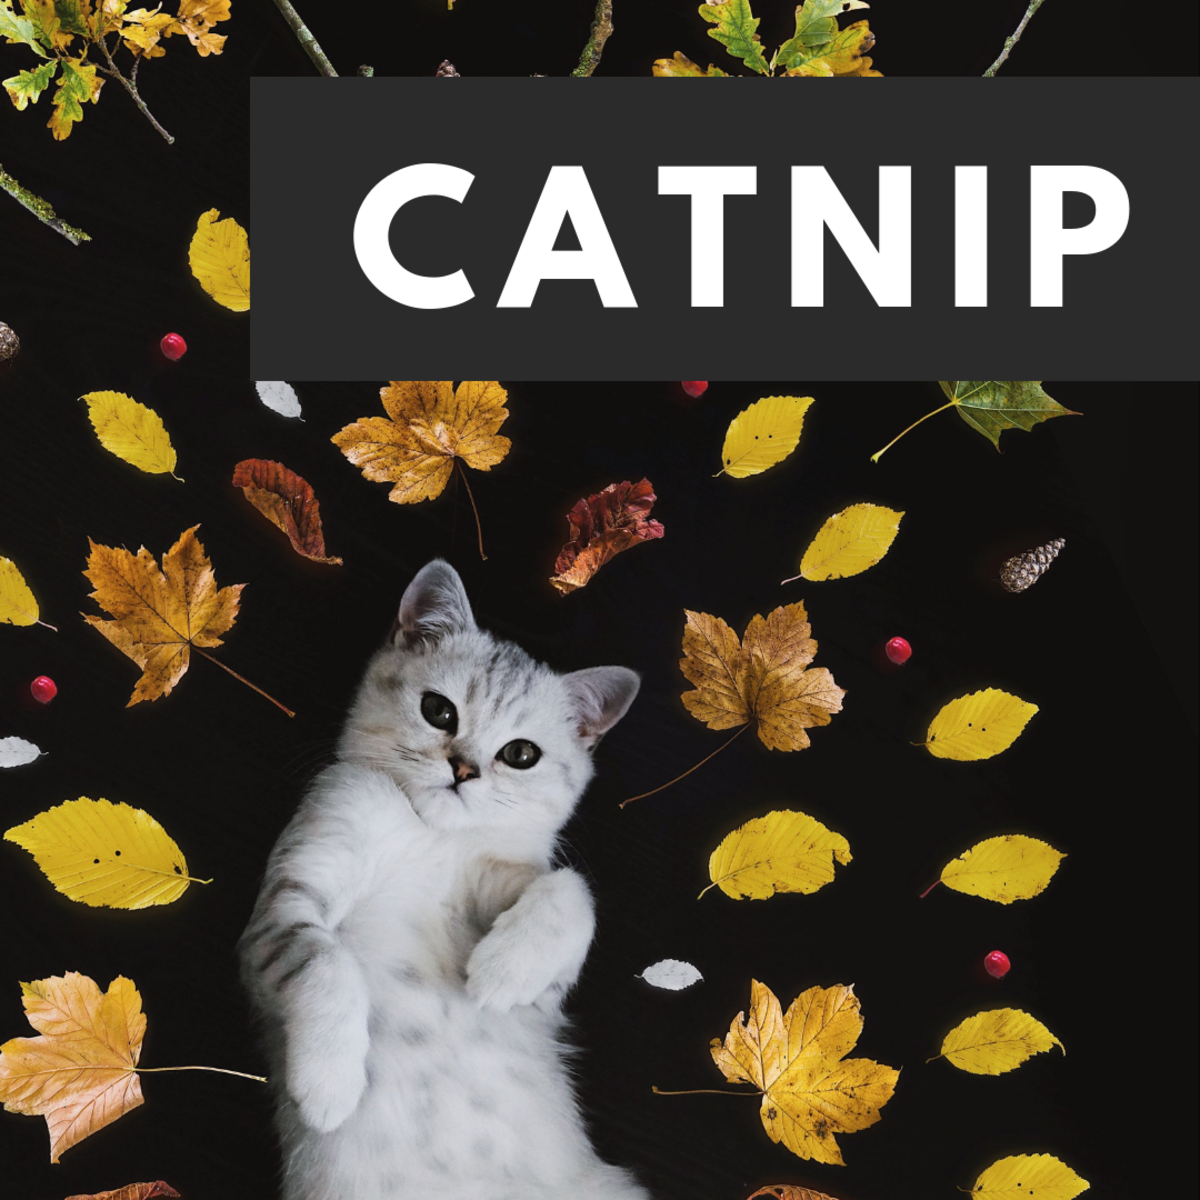 How Does Catnip Work and Do Cats Like It?